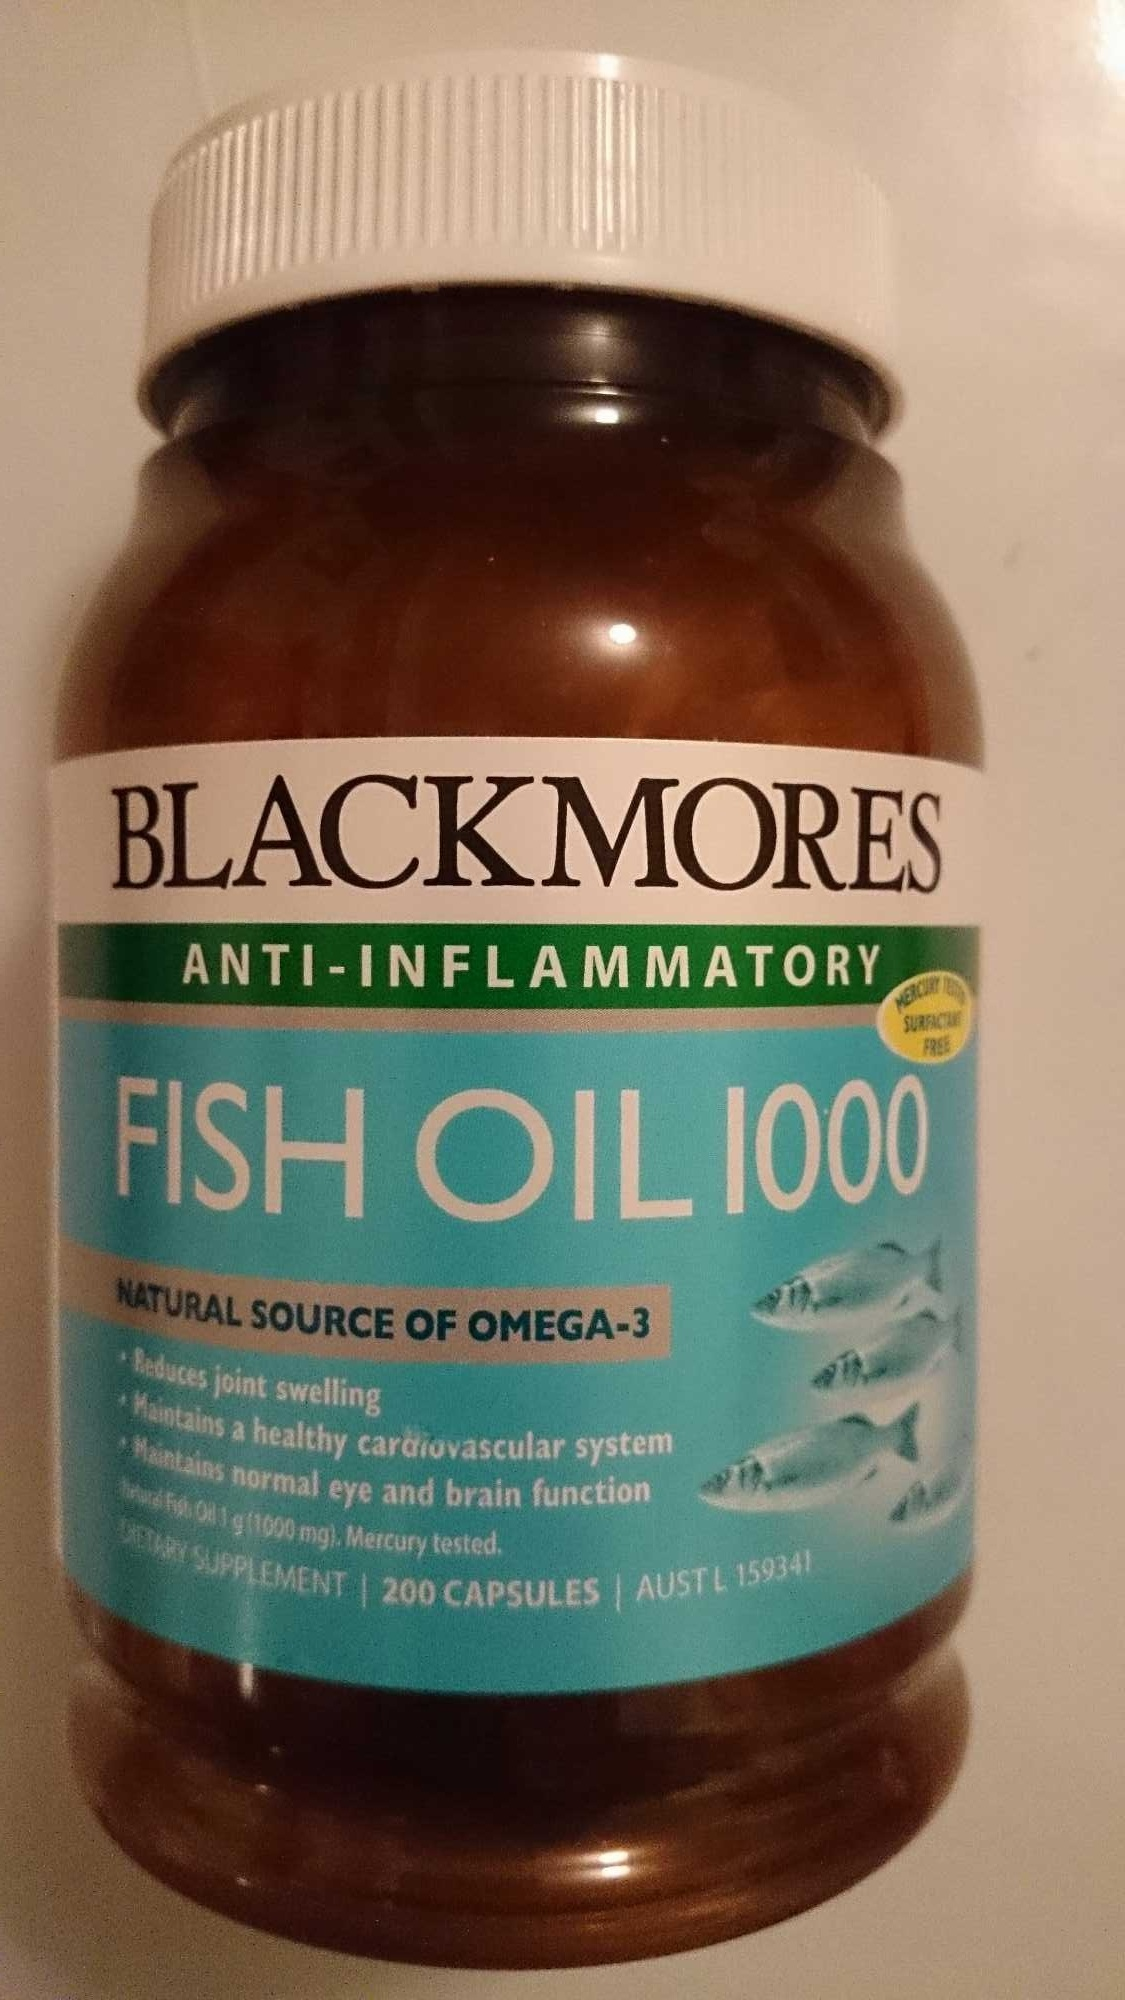 Fish Oil 1000 Vitamin Supplement - Product